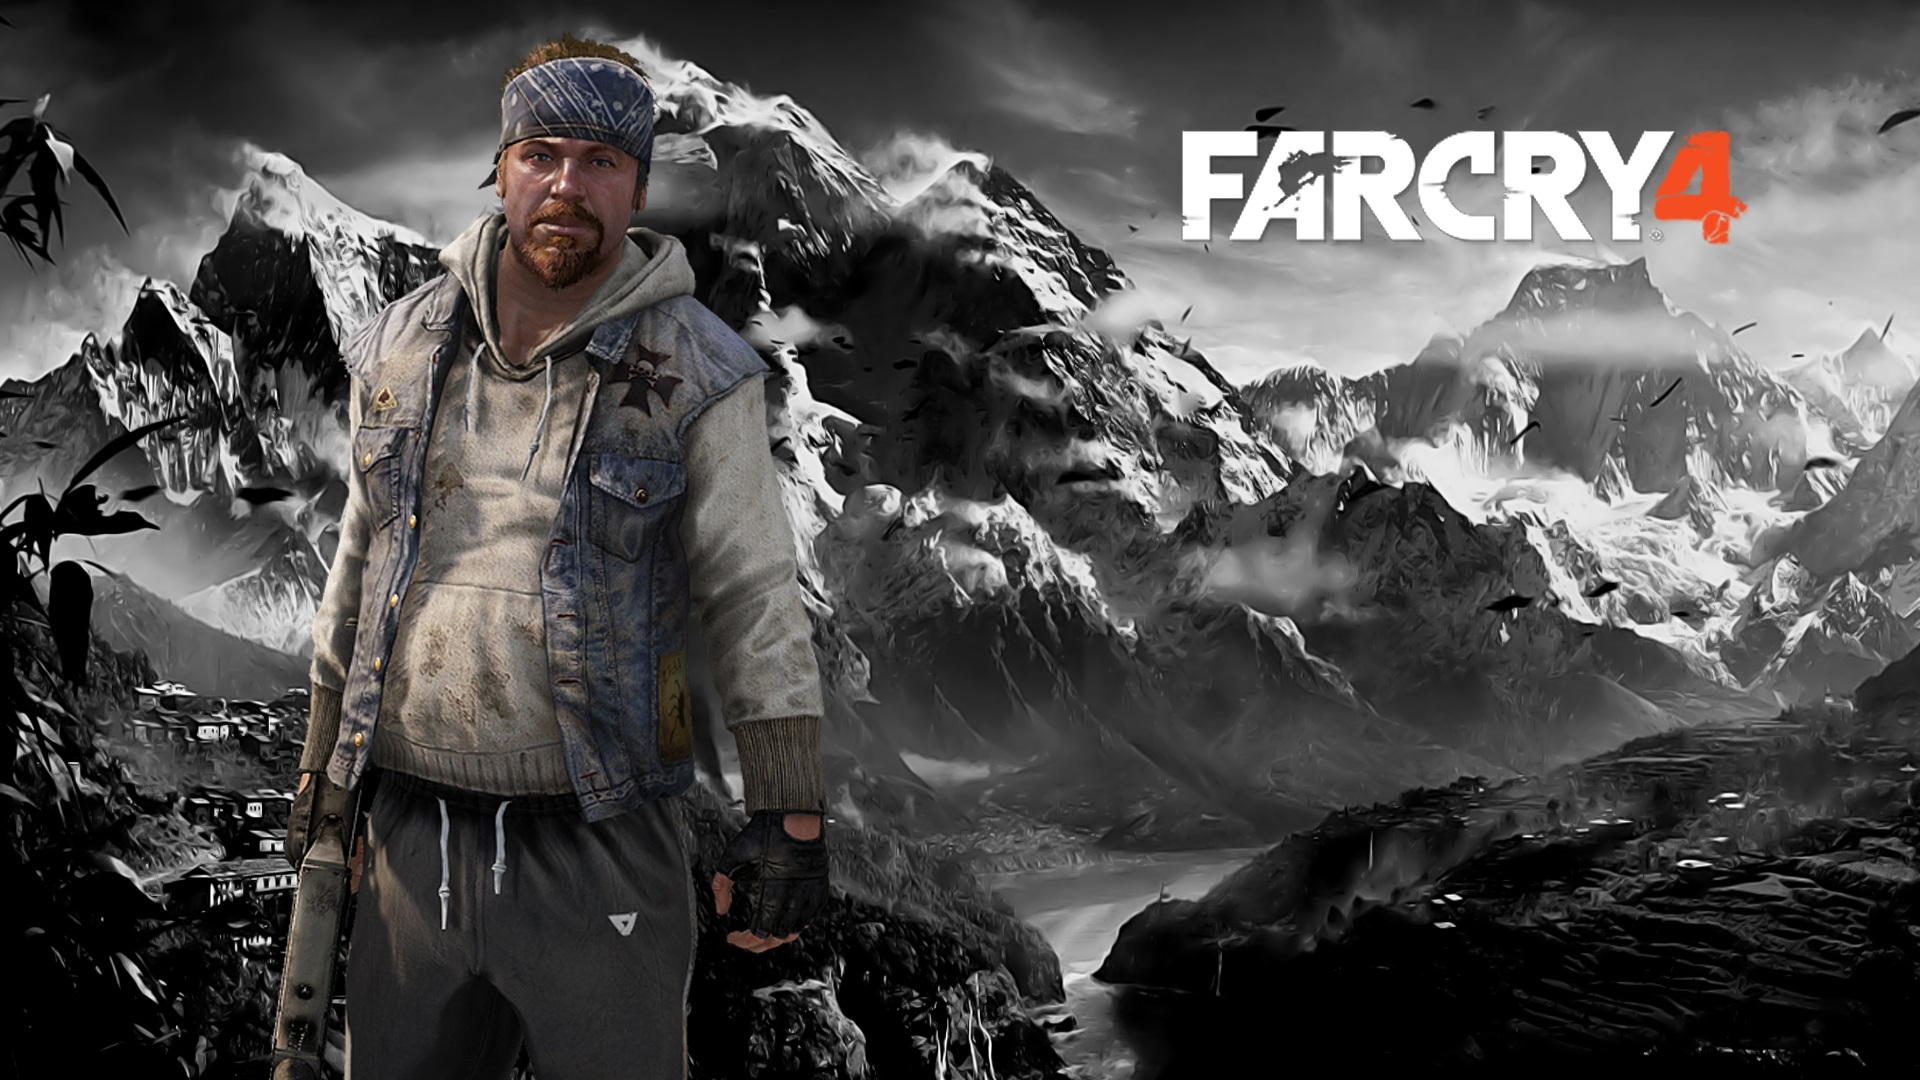 8 High Definition Wallpaper Far Cry 4 Game Wide Hd Wallpaper 1678